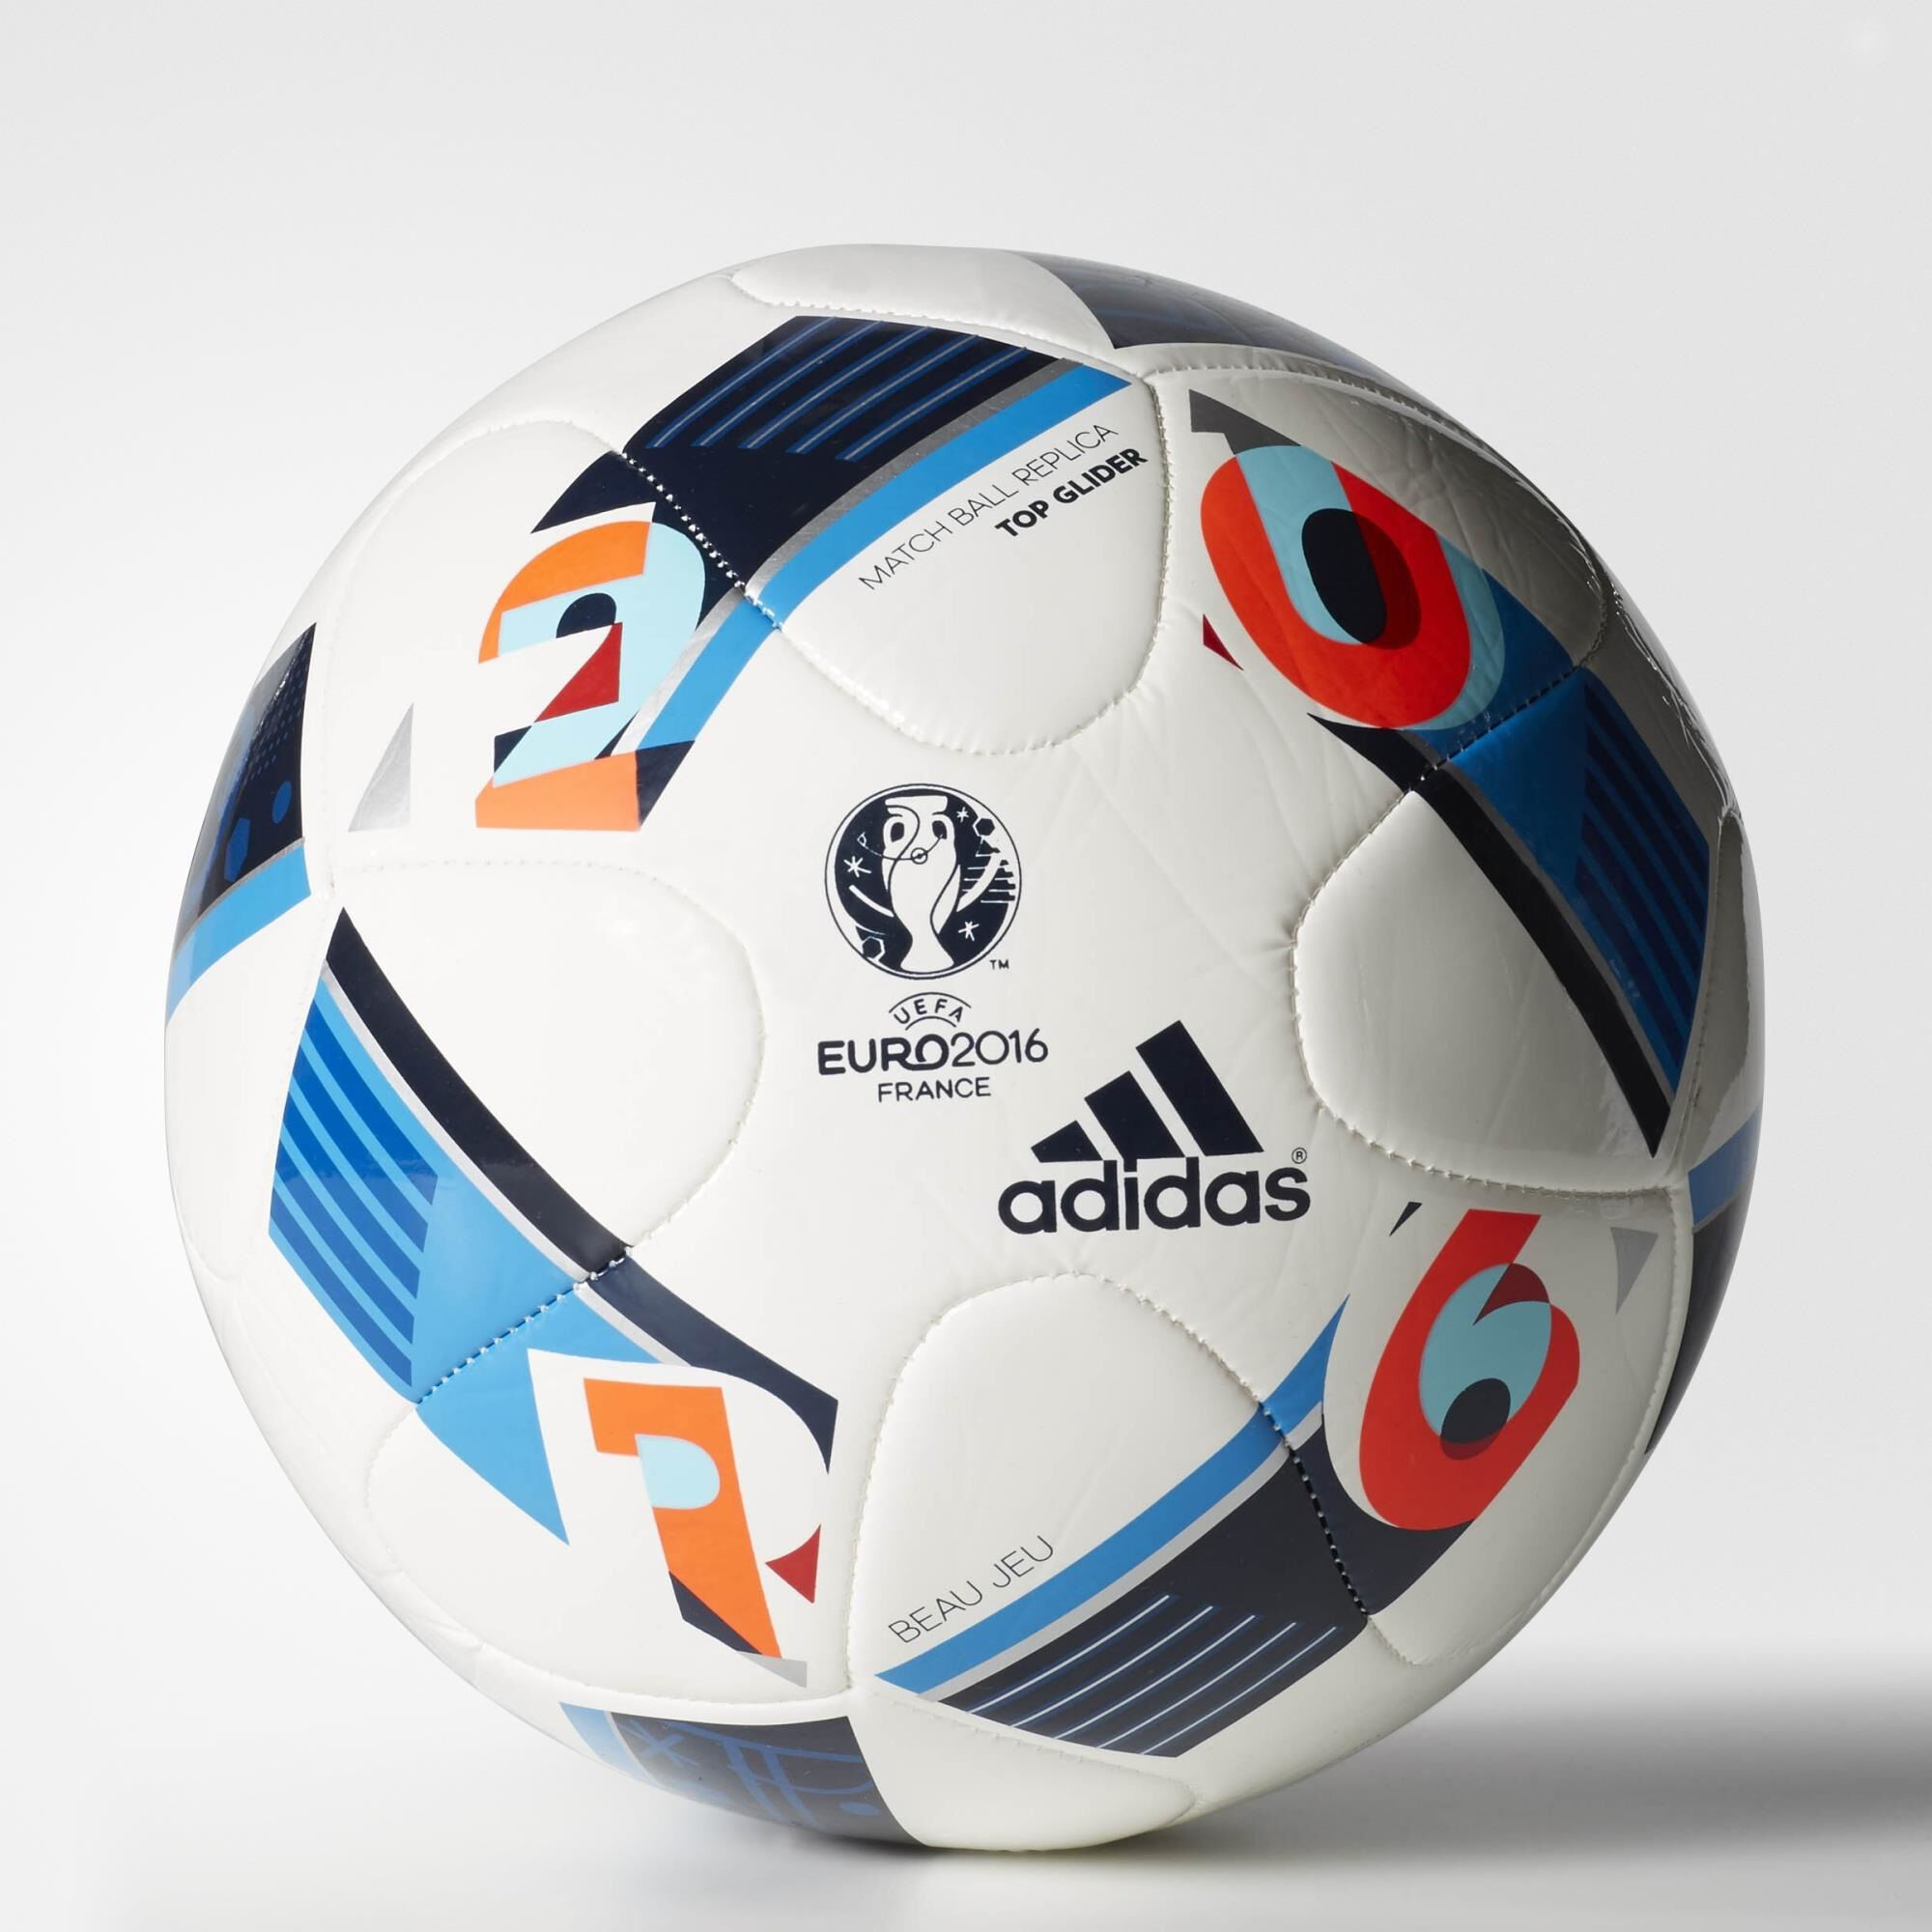 uefa euro 2016 top glide soccer ball. Black Bedroom Furniture Sets. Home Design Ideas